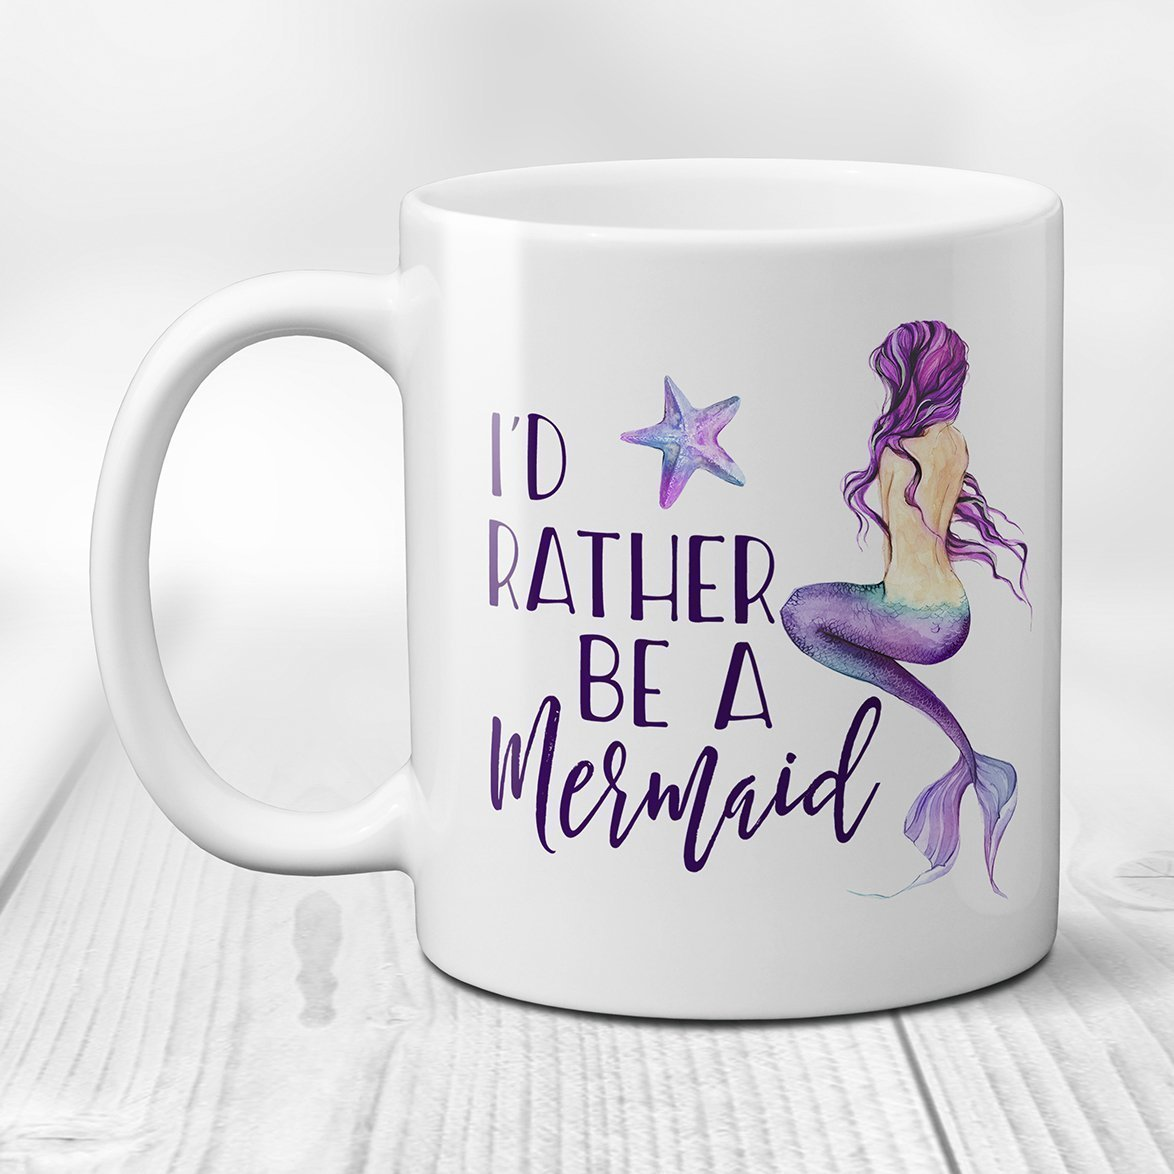 I'D RATHER BE A MERMAID Ceramic Coffee Mug with Starfish 11 or 15 oz